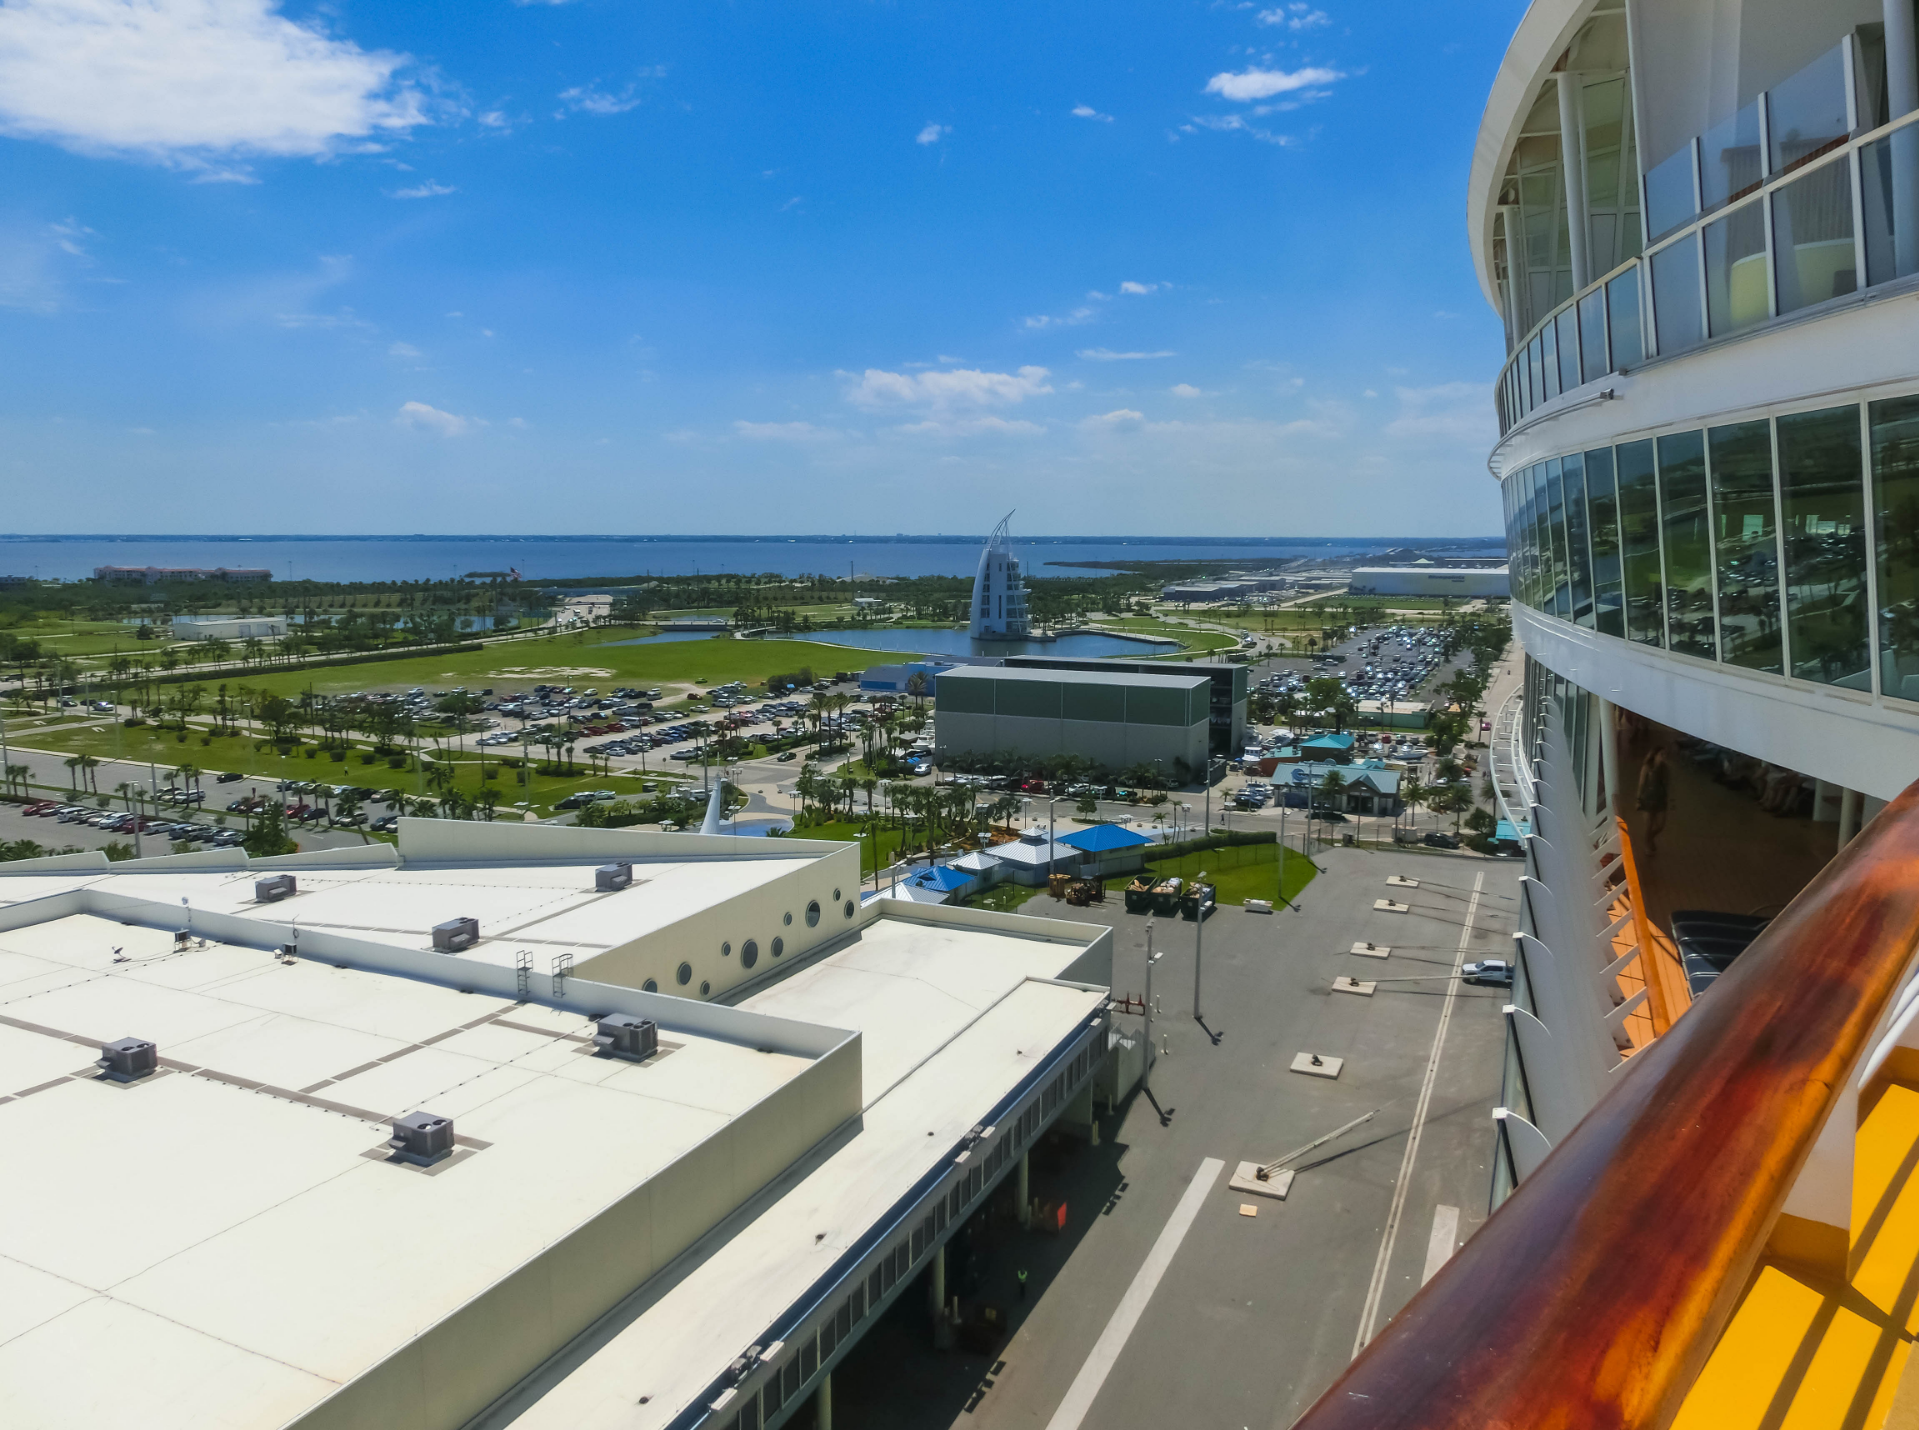 when will cruises resume at port canaveral in florida